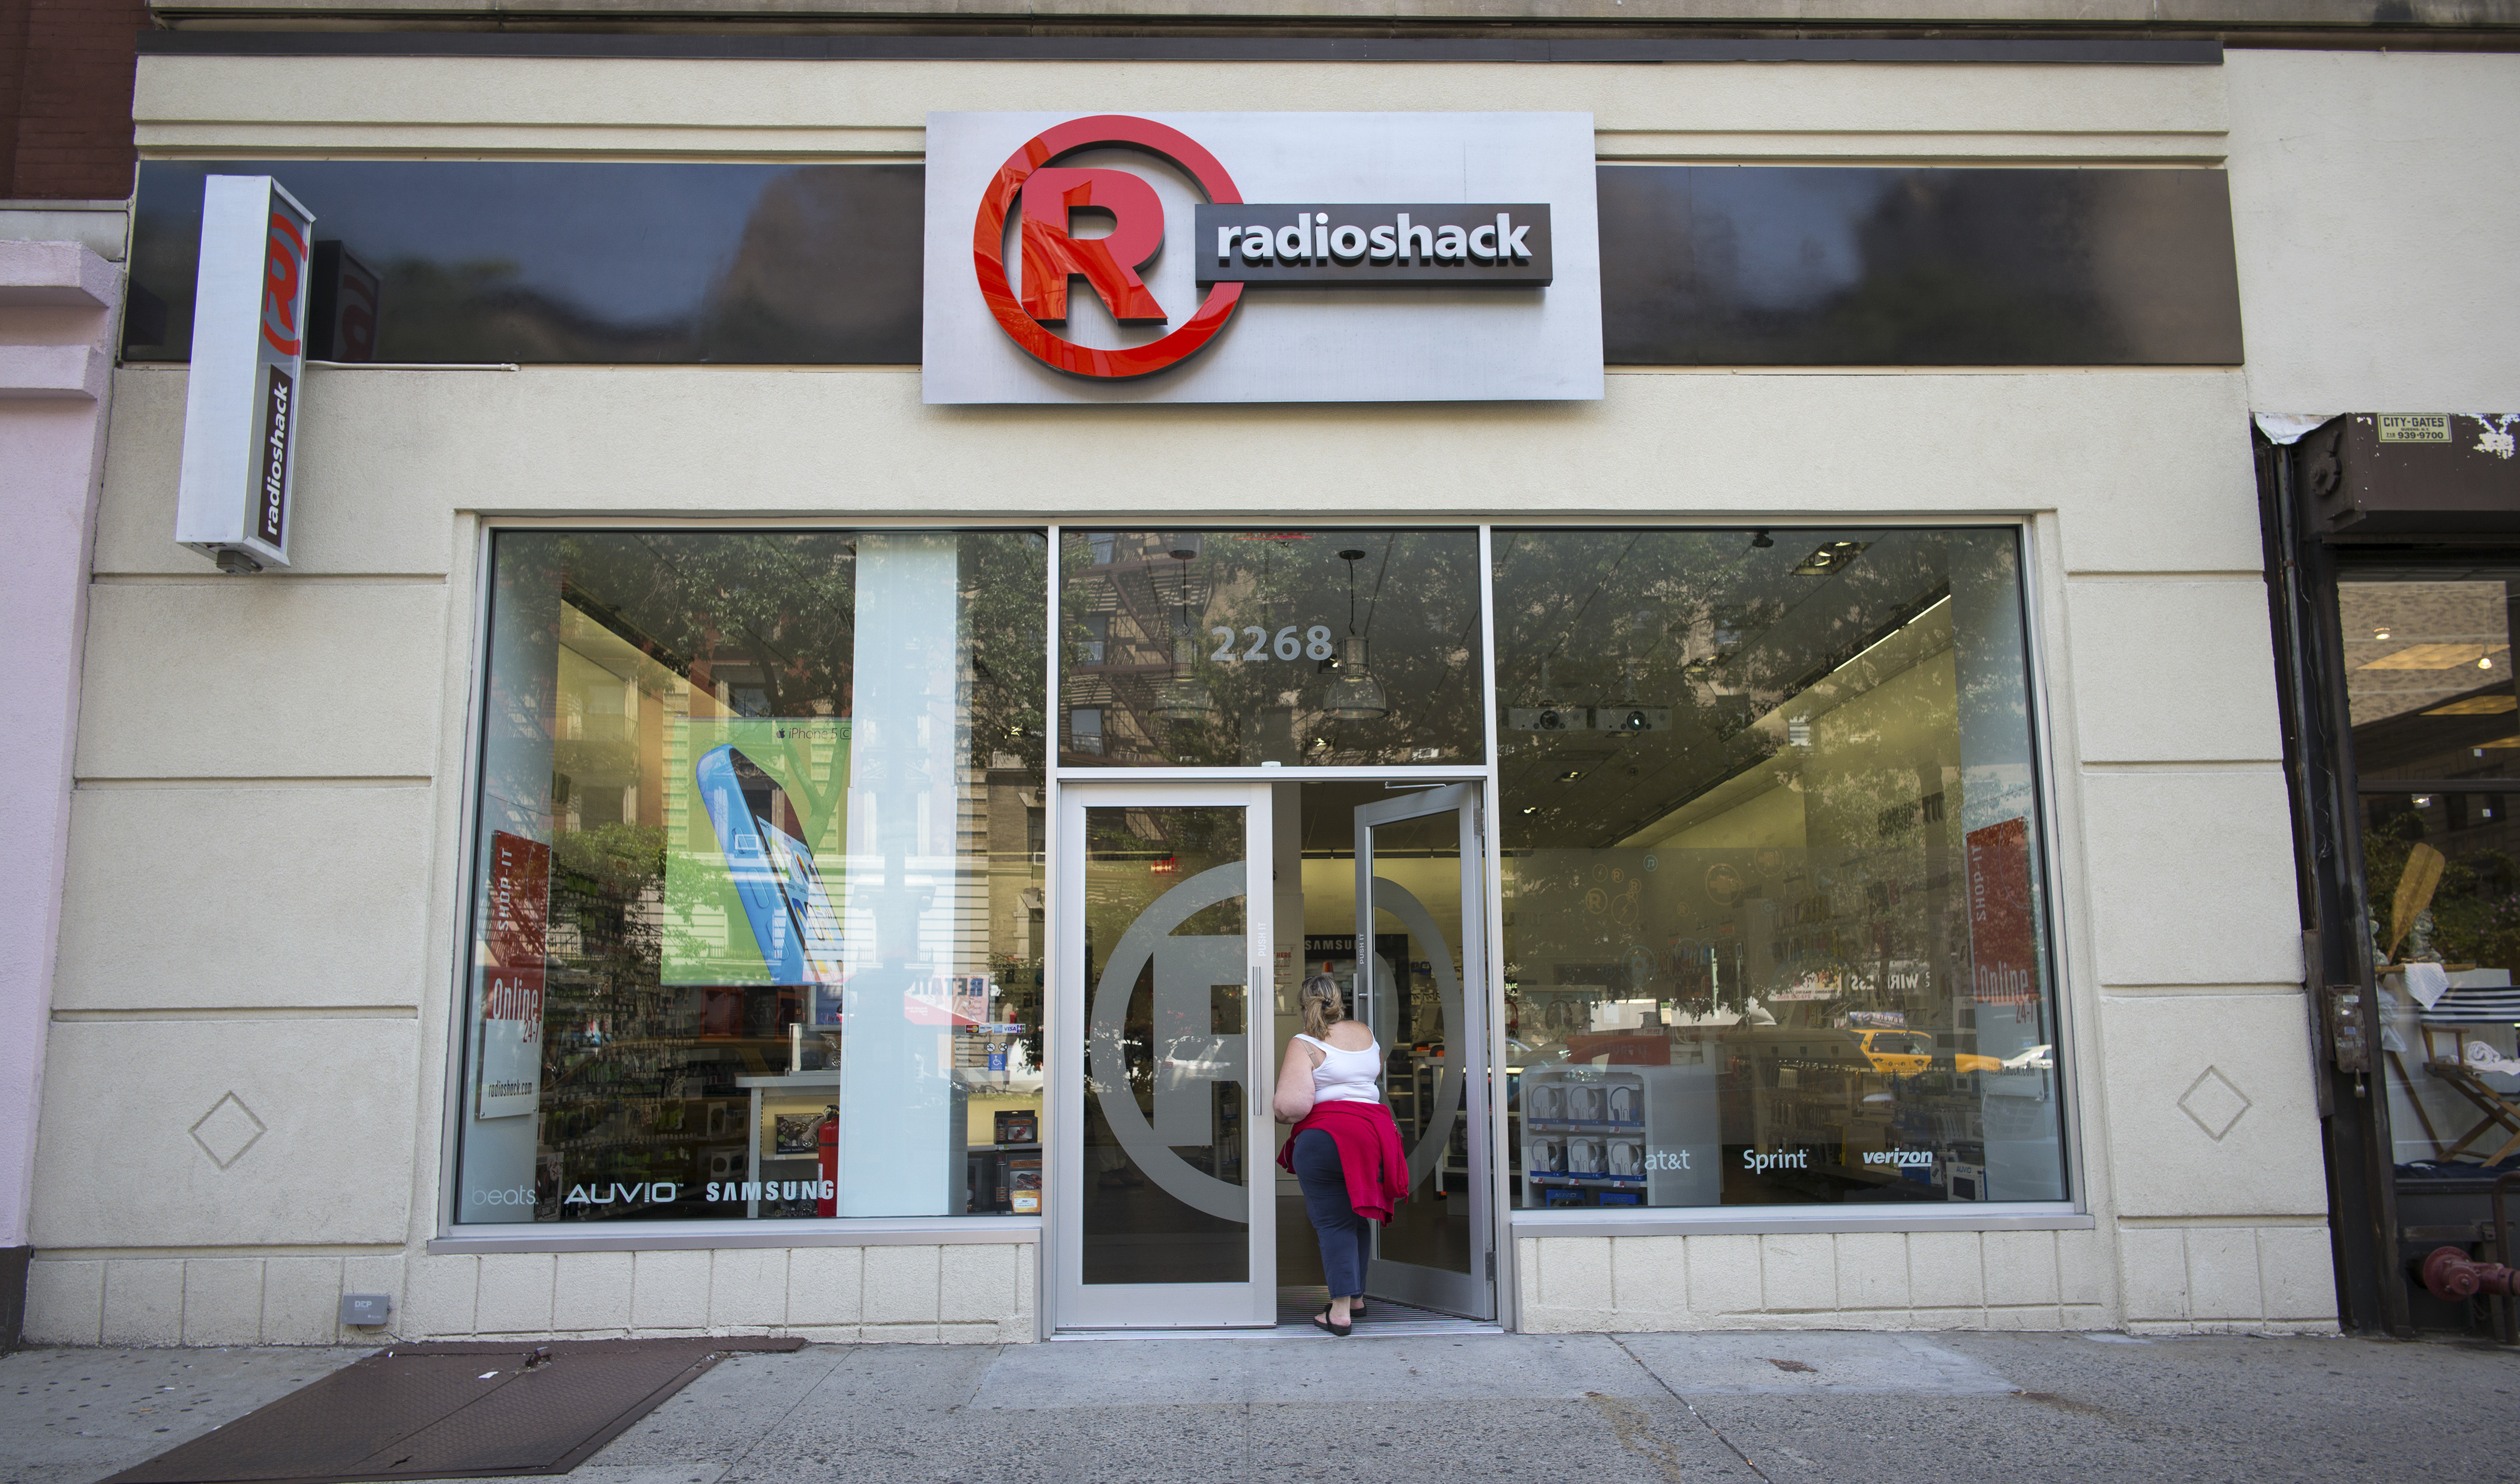 A remodeled RadioShack store in Manhattan. RadioShack flourished when consumers fixed or tinkered with their own electronics and gadgets, but now the appetite for those kinds of parts is a fraction of what it once was. (Angel Franco/The New York Times)